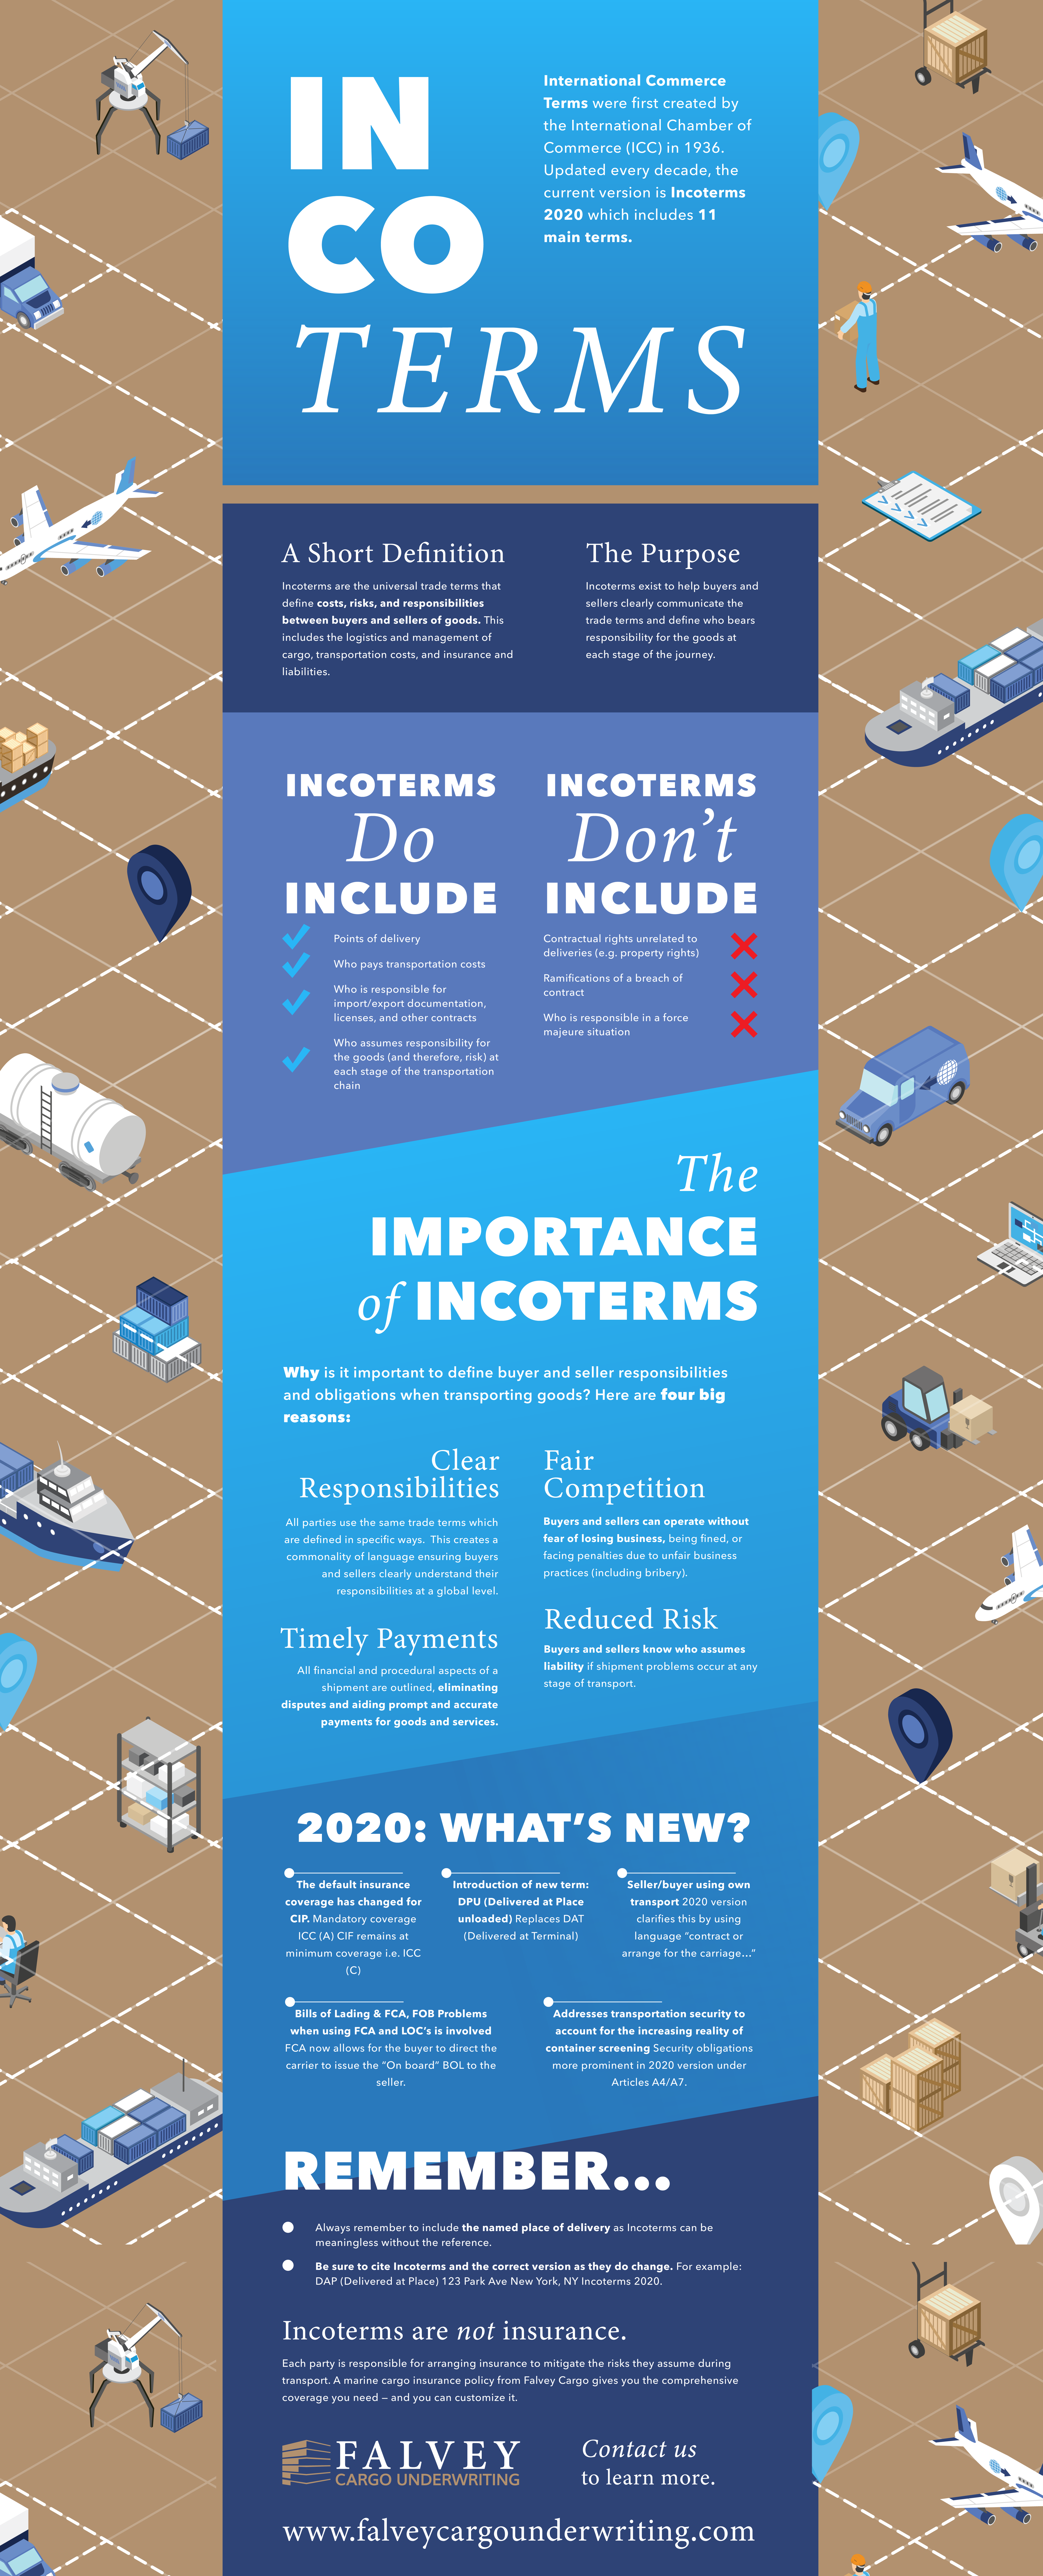 FCU_Infographic_Incoterms-2020